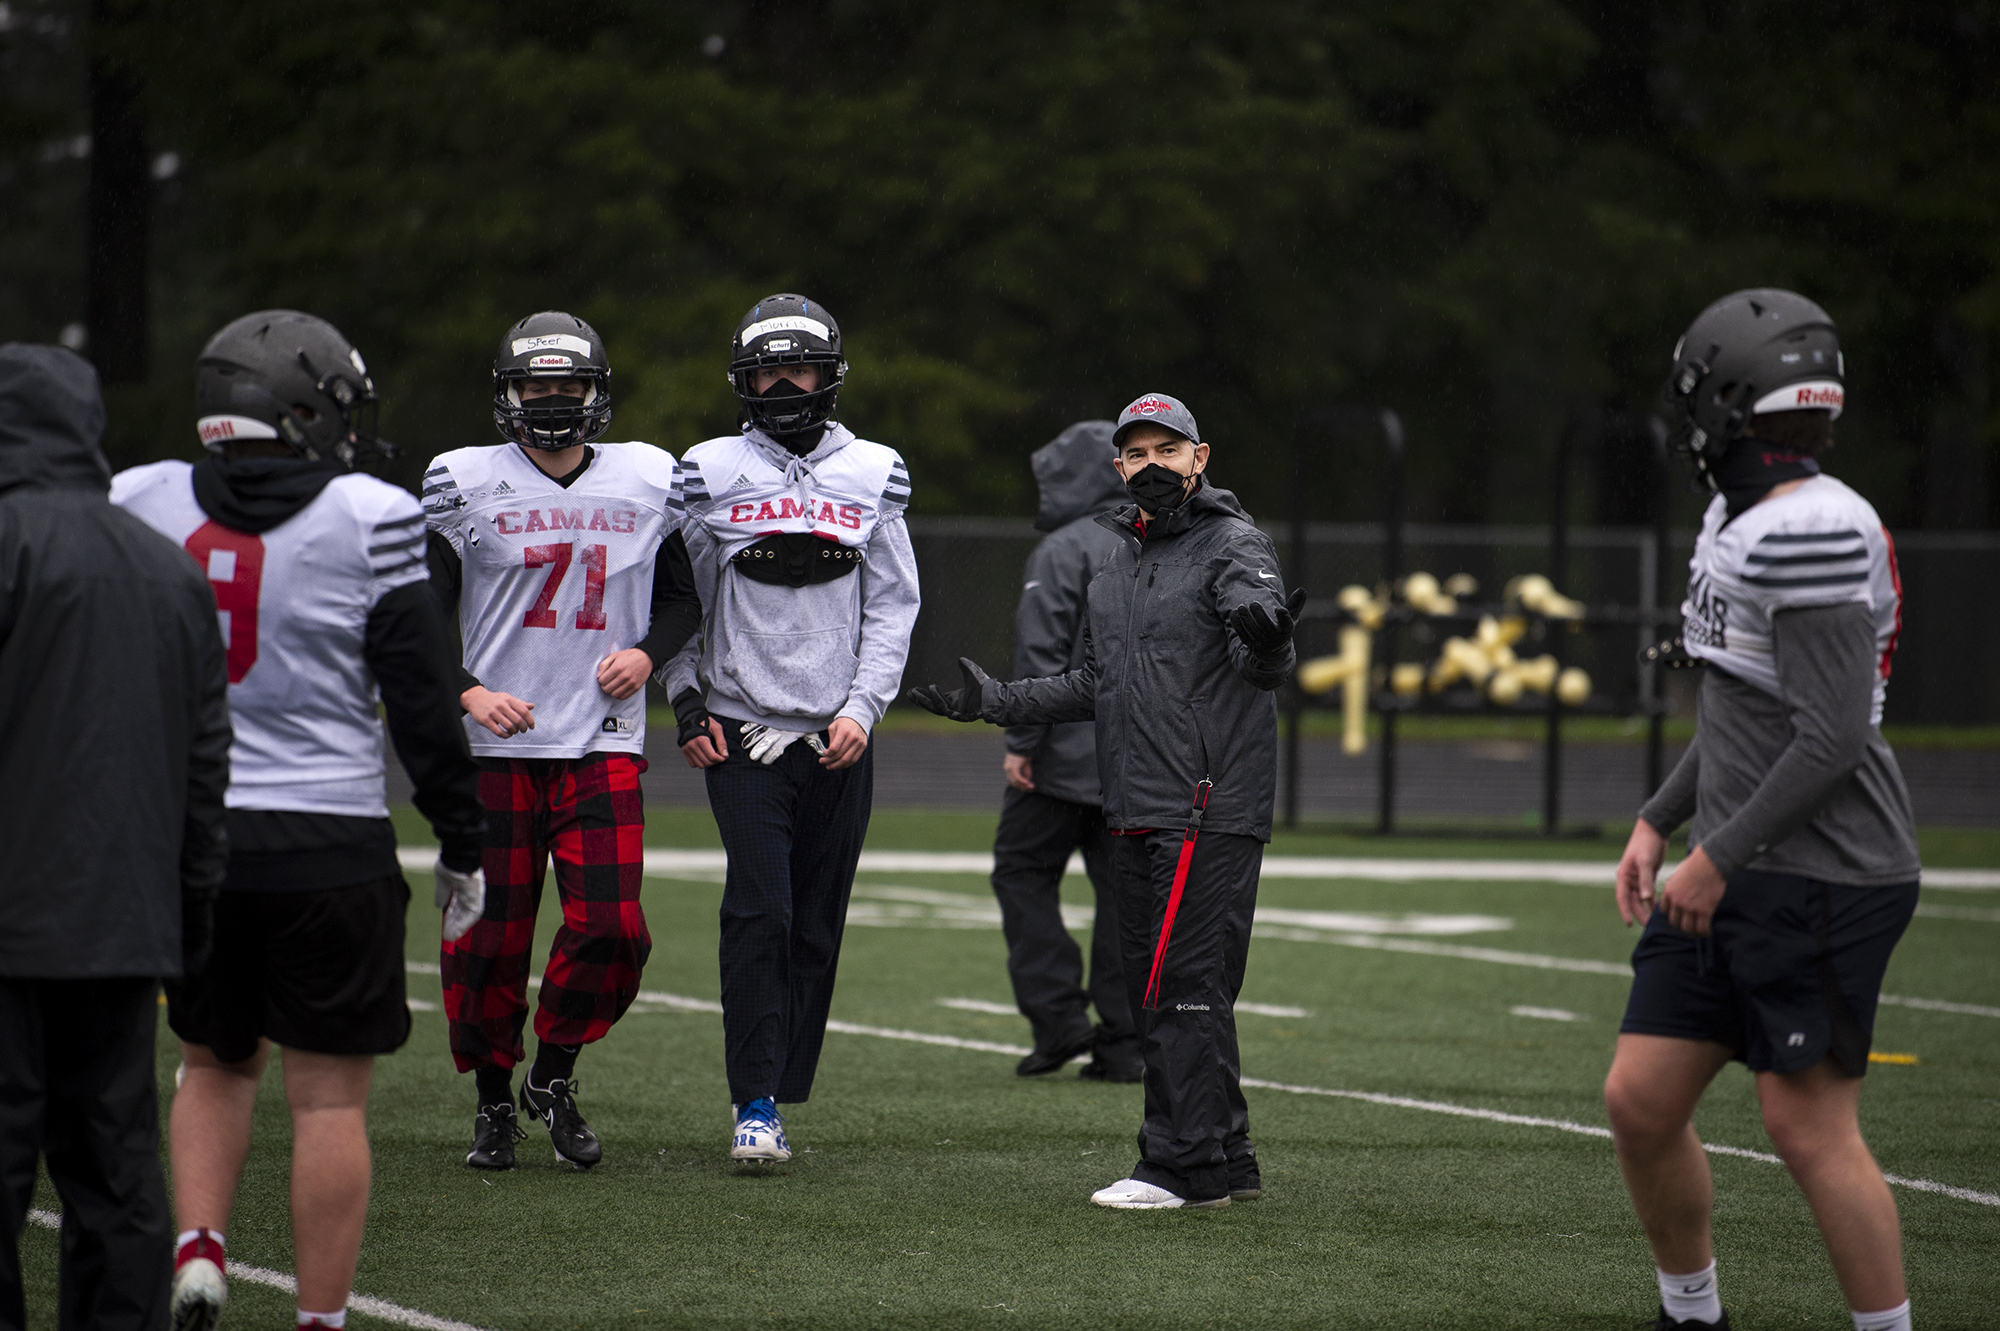 Camas coach Jon Eagle tries to walk players through a punt protection drill on Monday, February 1, 2021 at Cardon Field at Camas High School. Eagle's Papermakers won't get a chance to defend their 2019 4A State Championship in a shortened season.